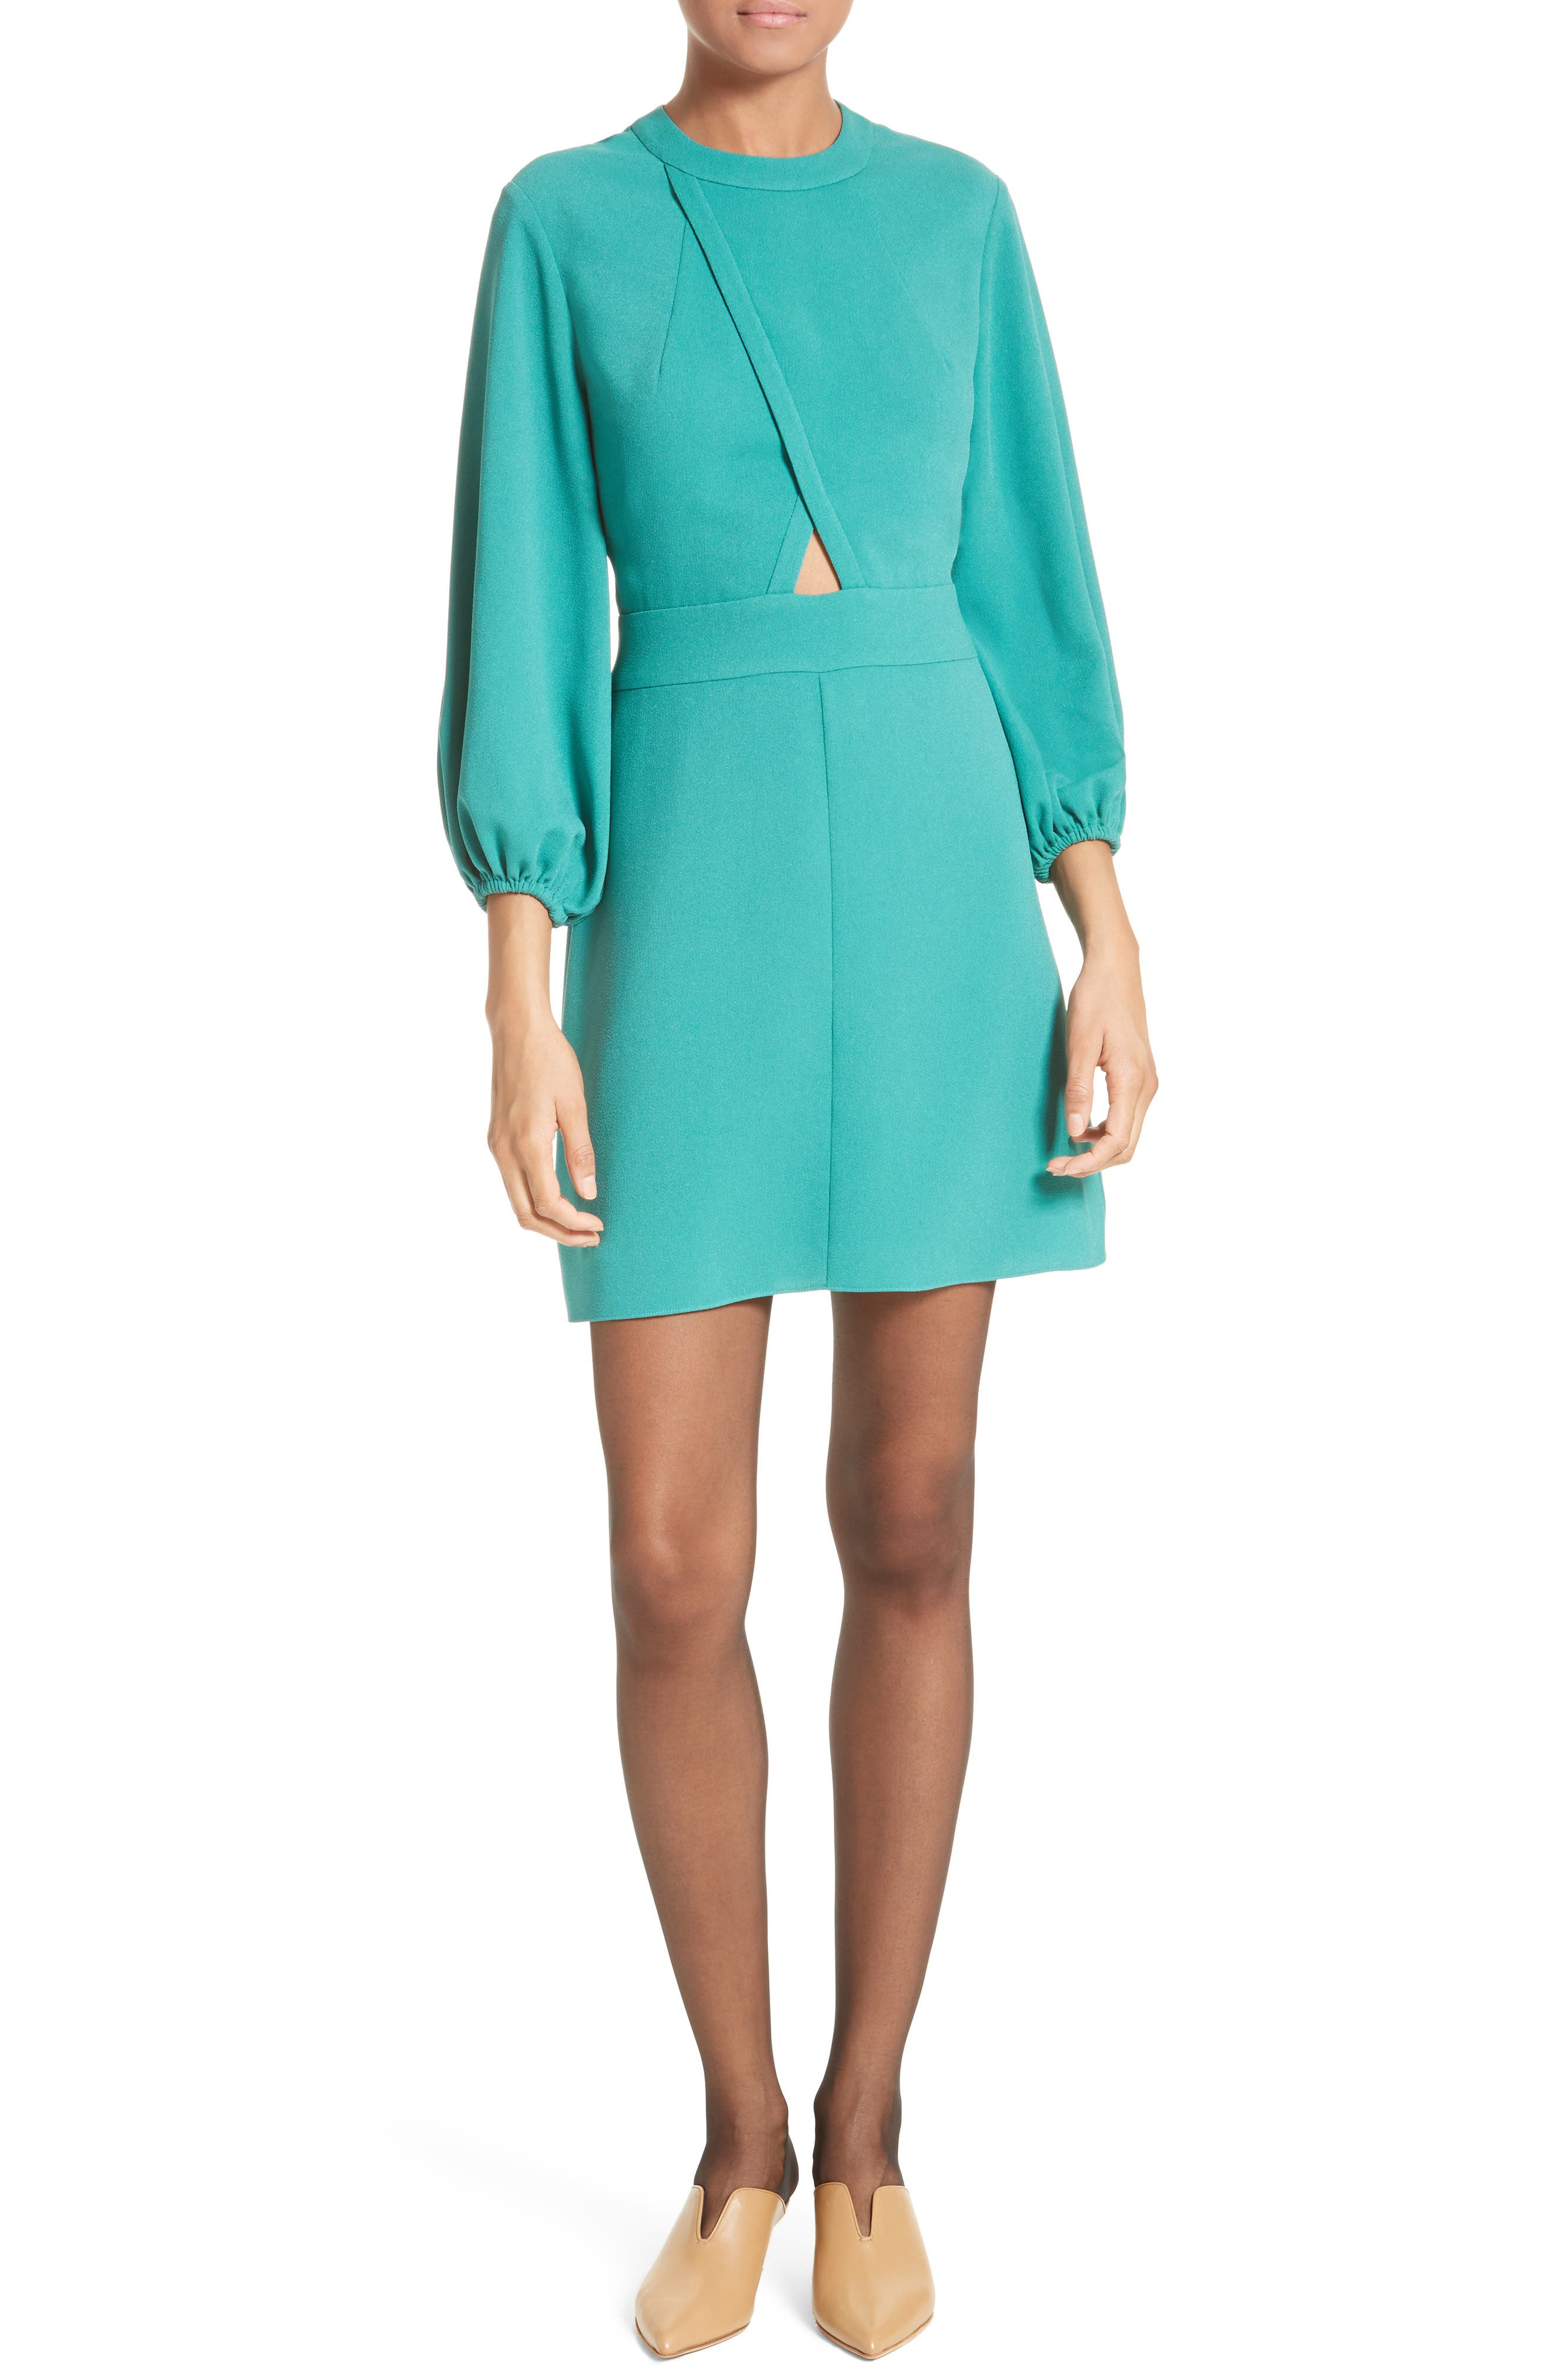 Tibi Keyhole Detail Minidress